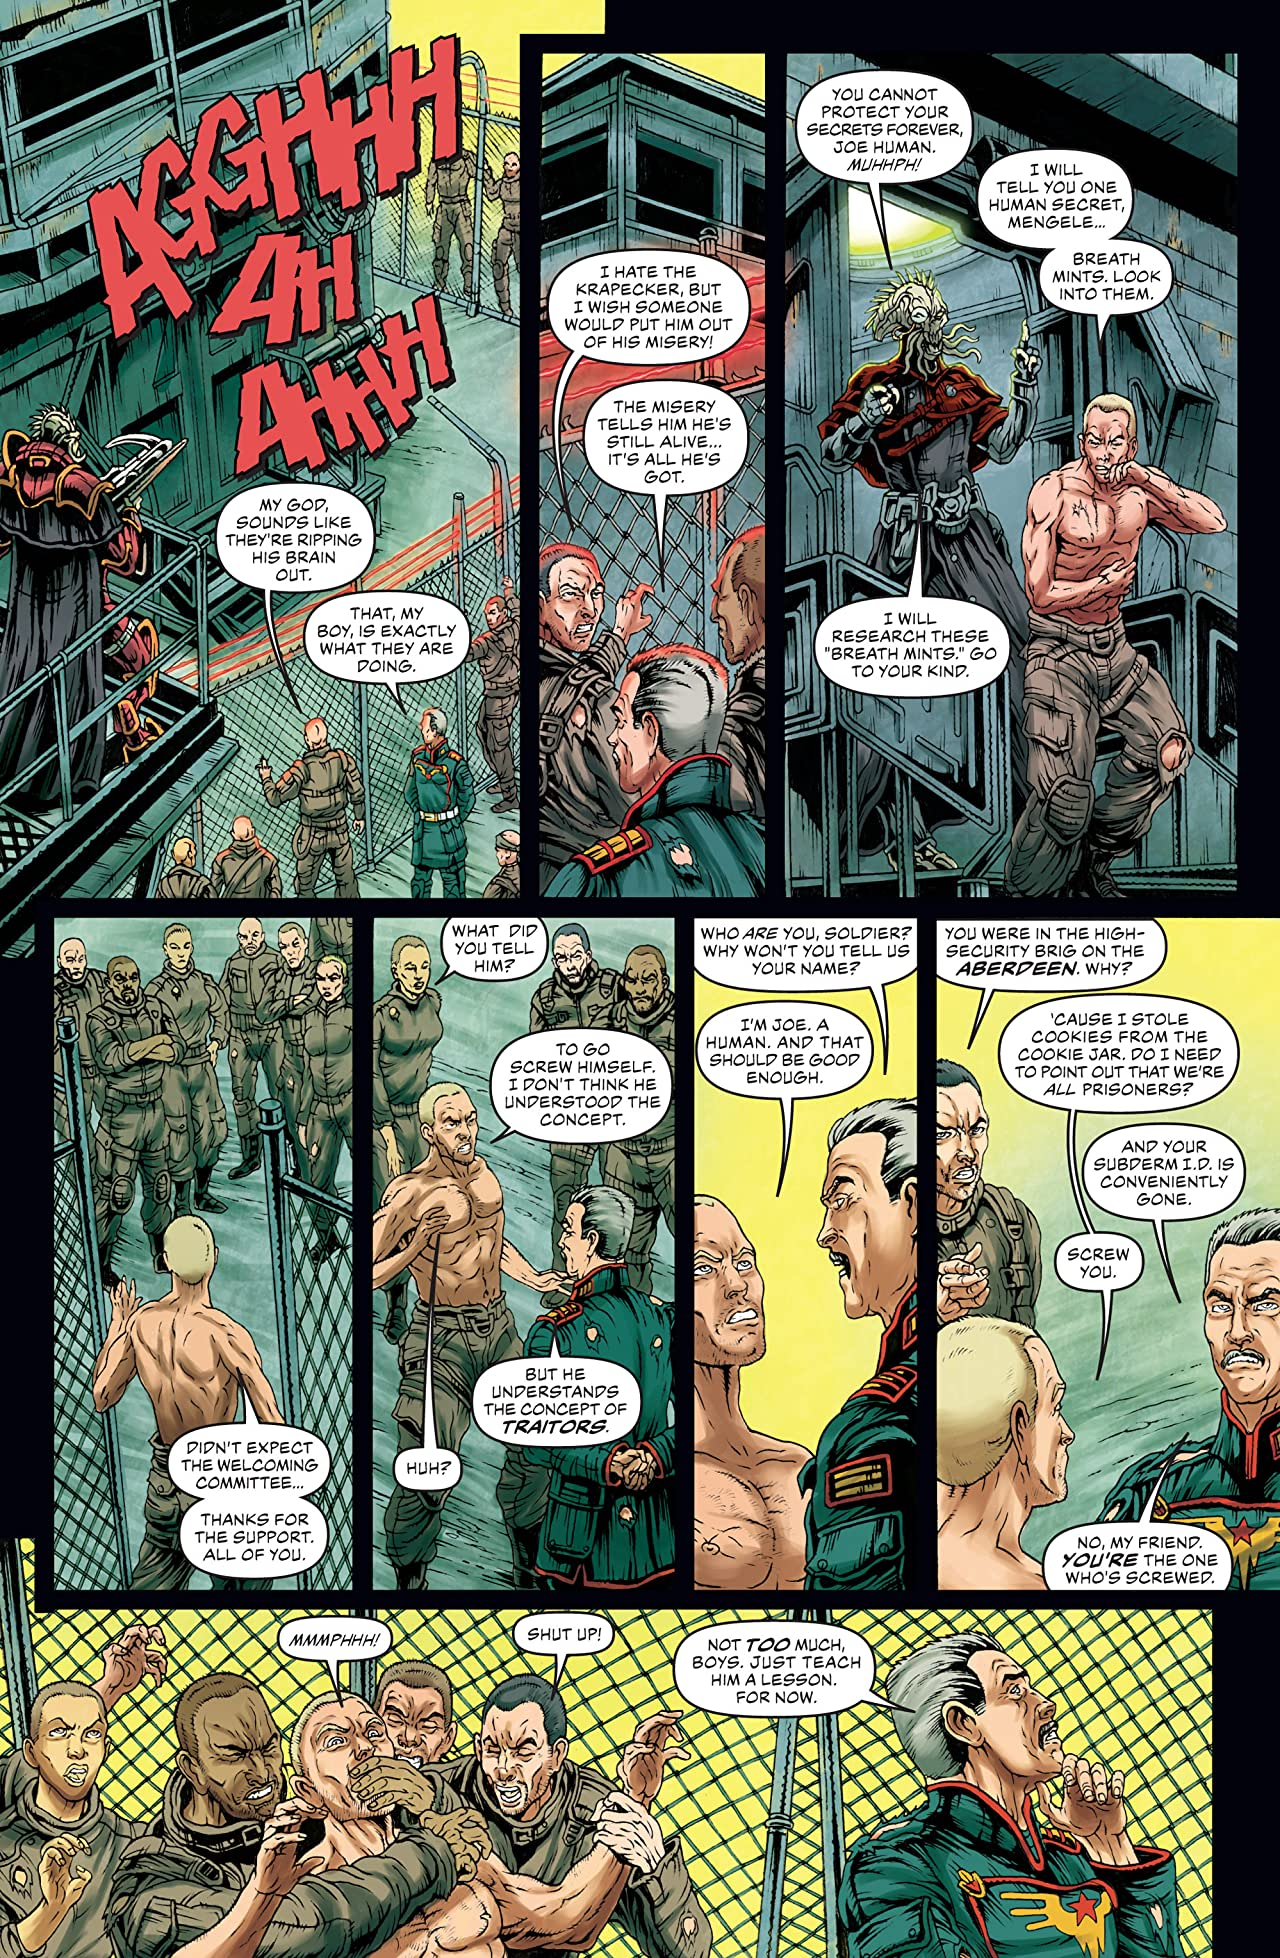 Stalag-X: Blood War #2